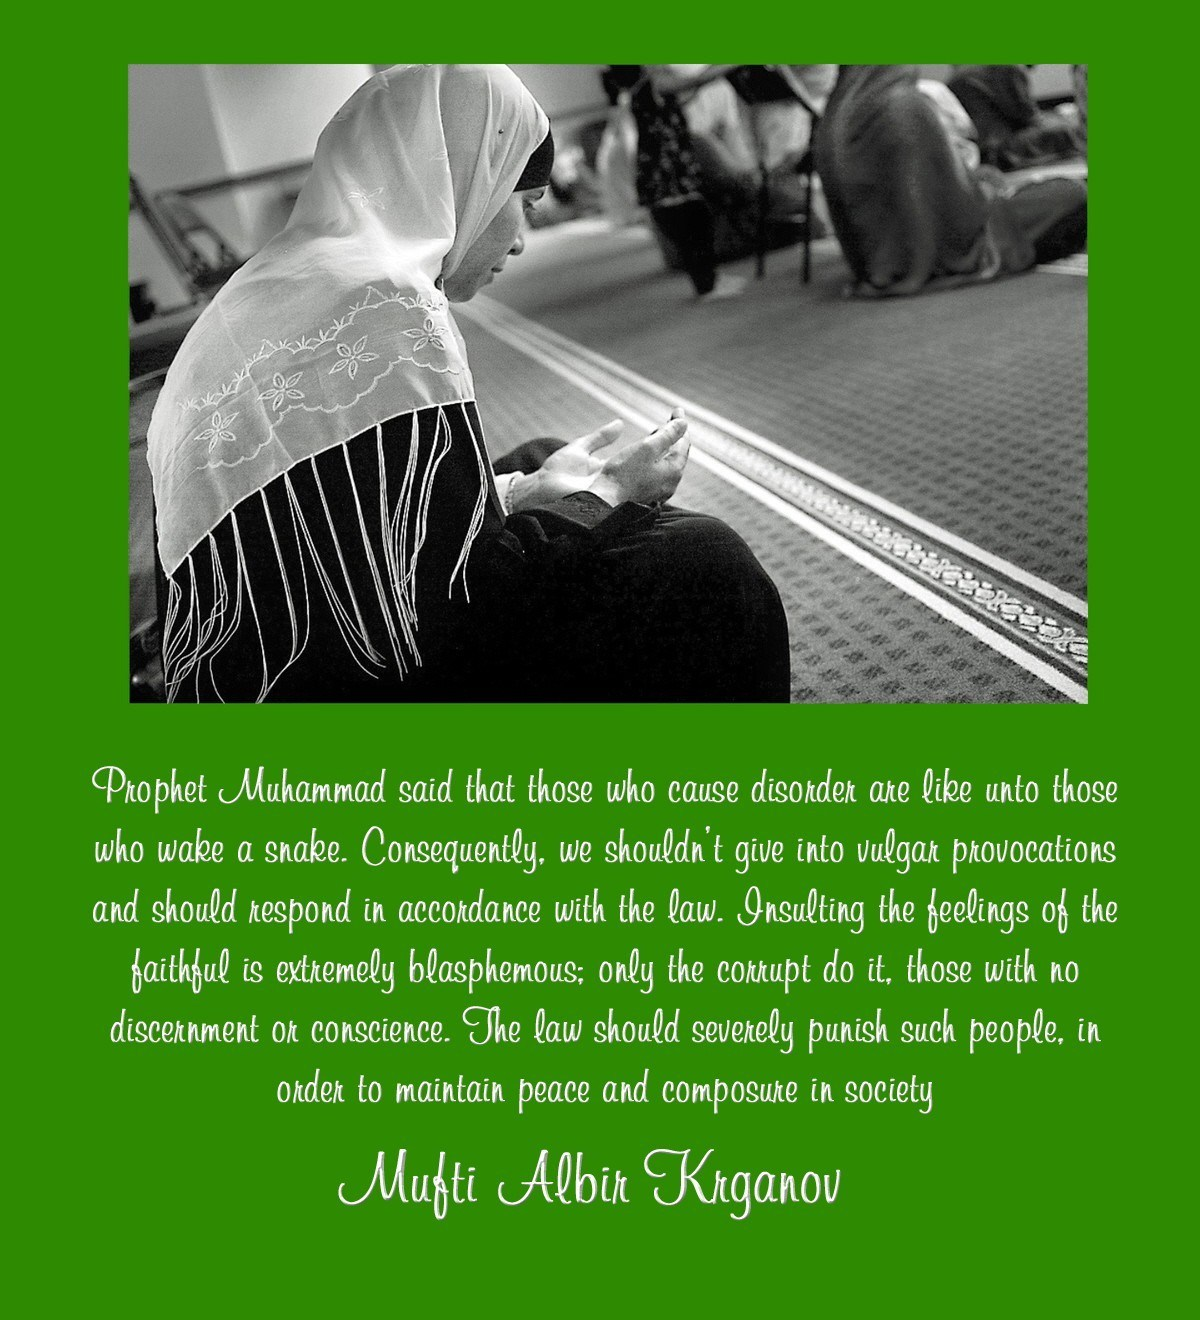 00-muslim-woman-praying-mufti-alban-krganov-russian-muslim-09-12